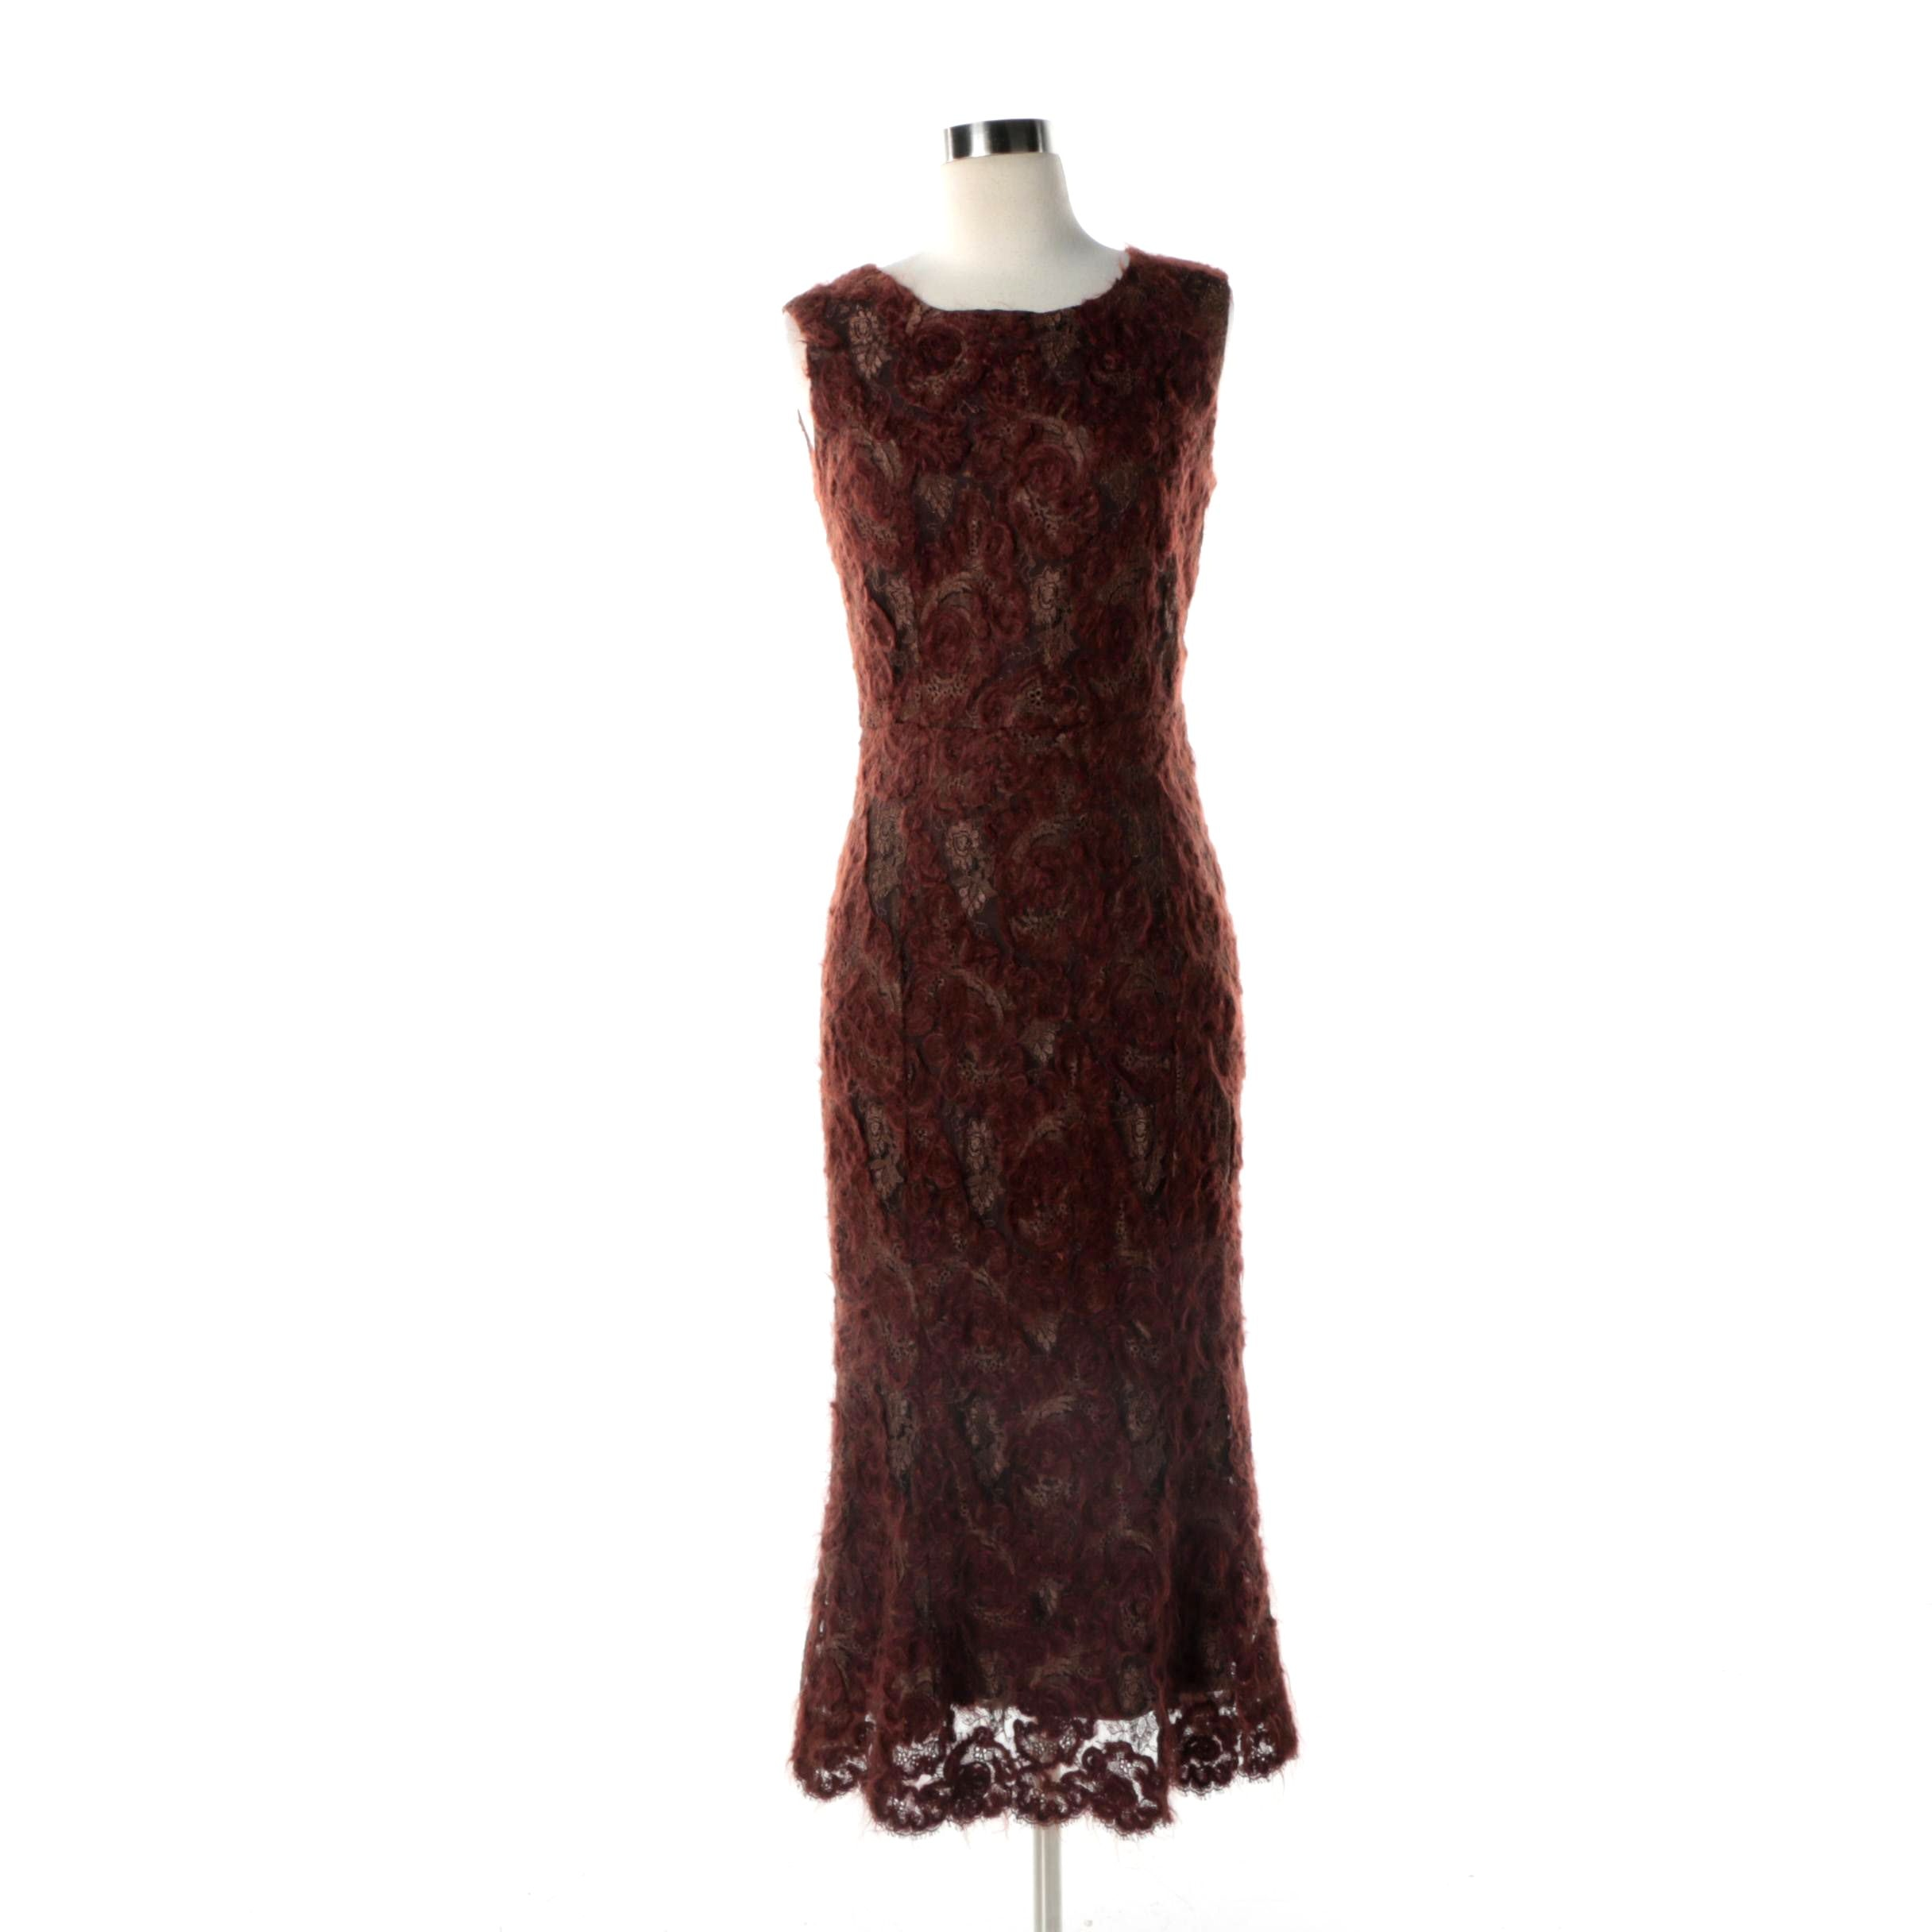 Collette Dinnigan Brown Lace Dress with Mohair Blend Embroidered Flowers